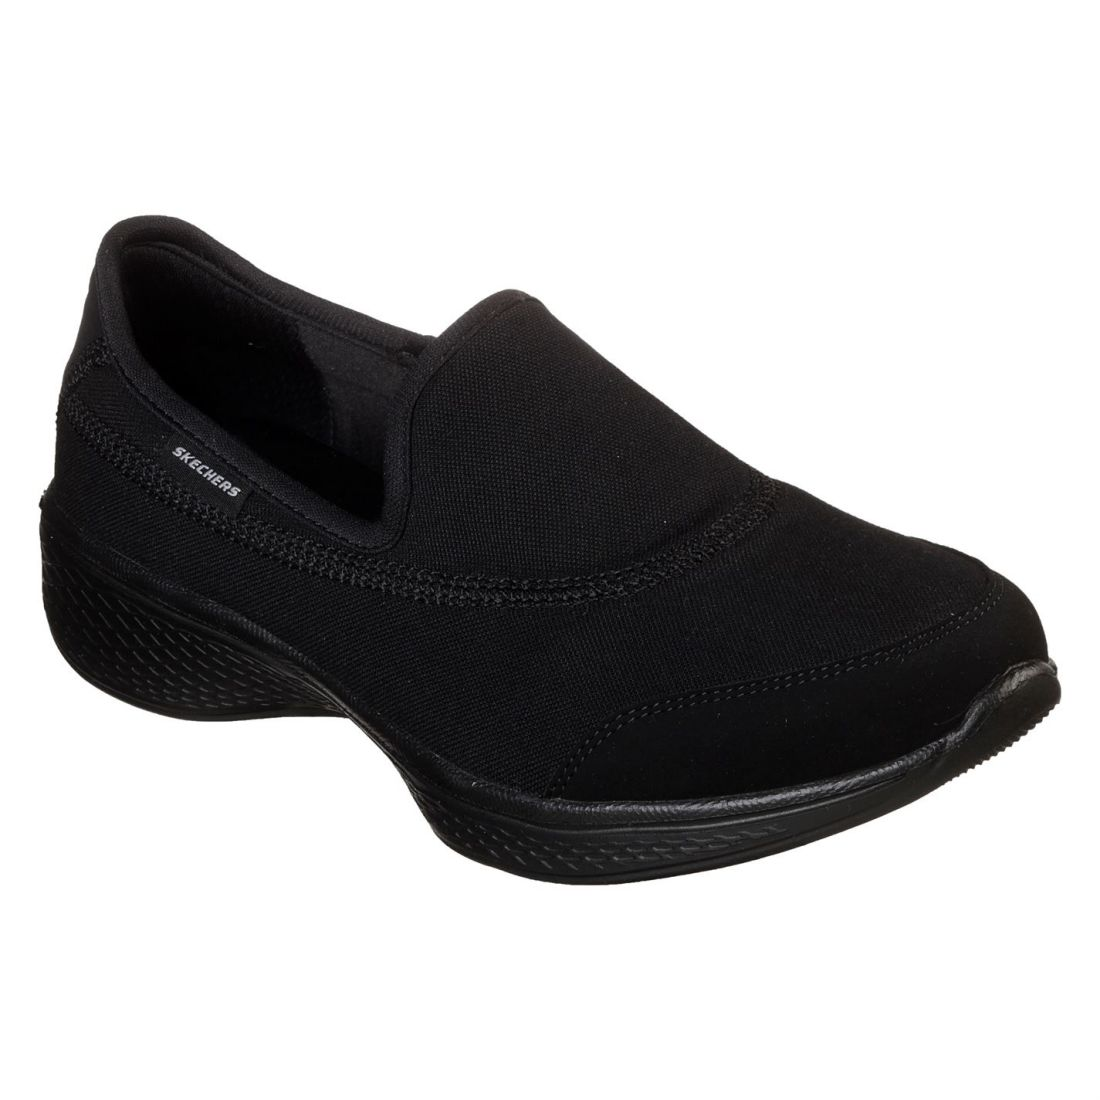 cae8ef03e52 Details about Skechers Womens Ladies GoWalk Core Slip On Trainers Sports  Shoes